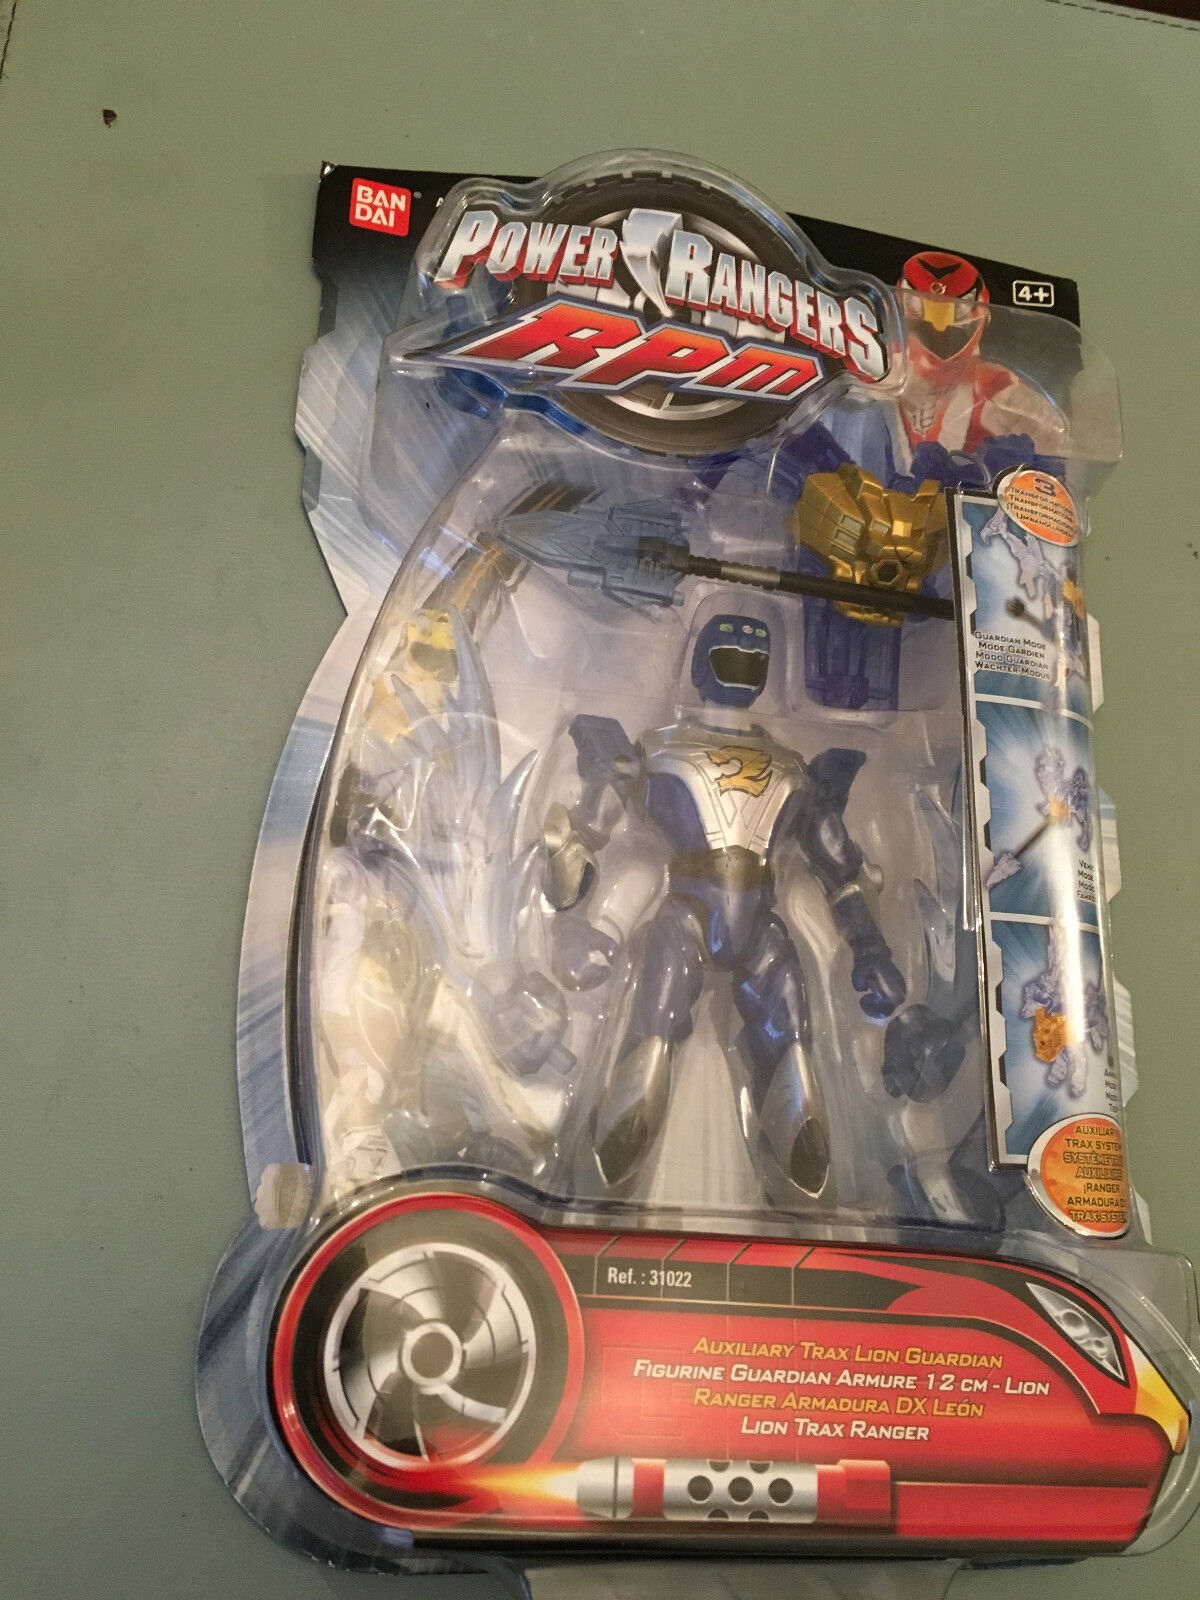 Power rangers rpm aux trax löwe guardian mit traz zord system in blister